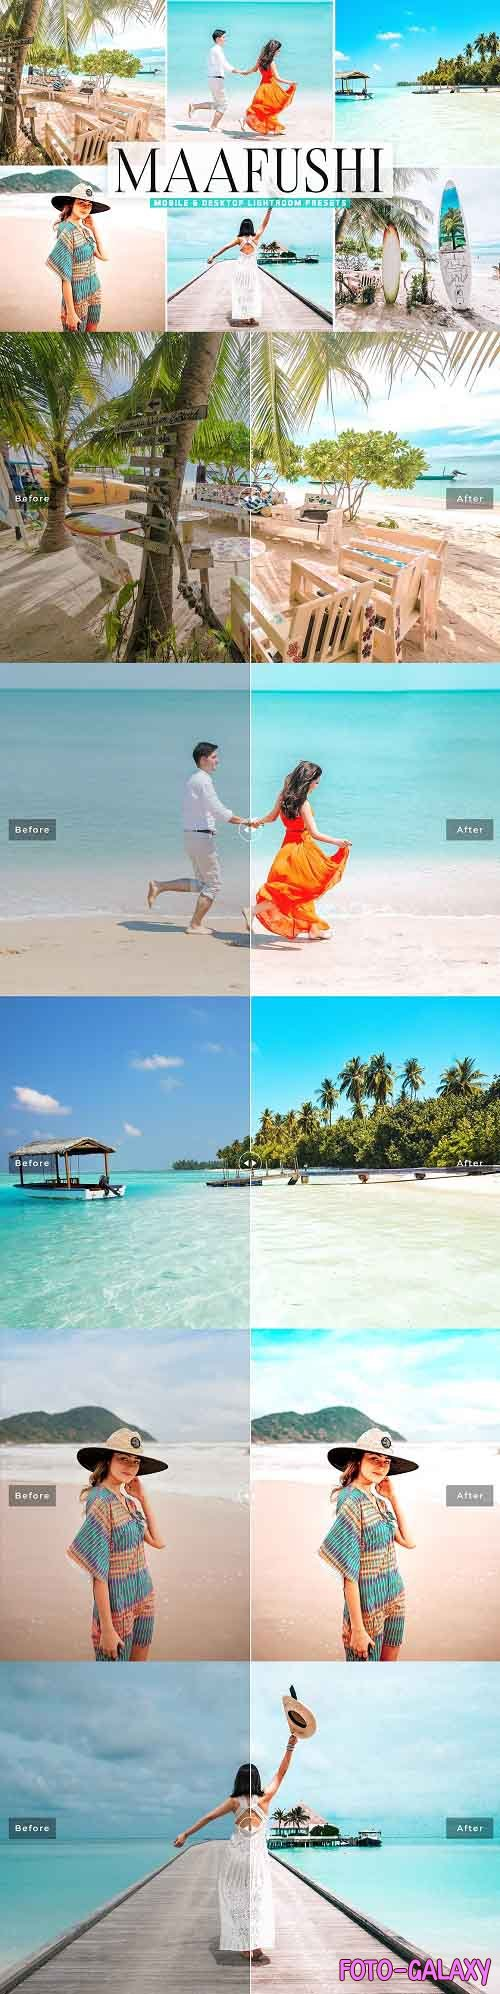 Maafushi Pro Lightroom Presets - 5448226 - Mobile & Desktop